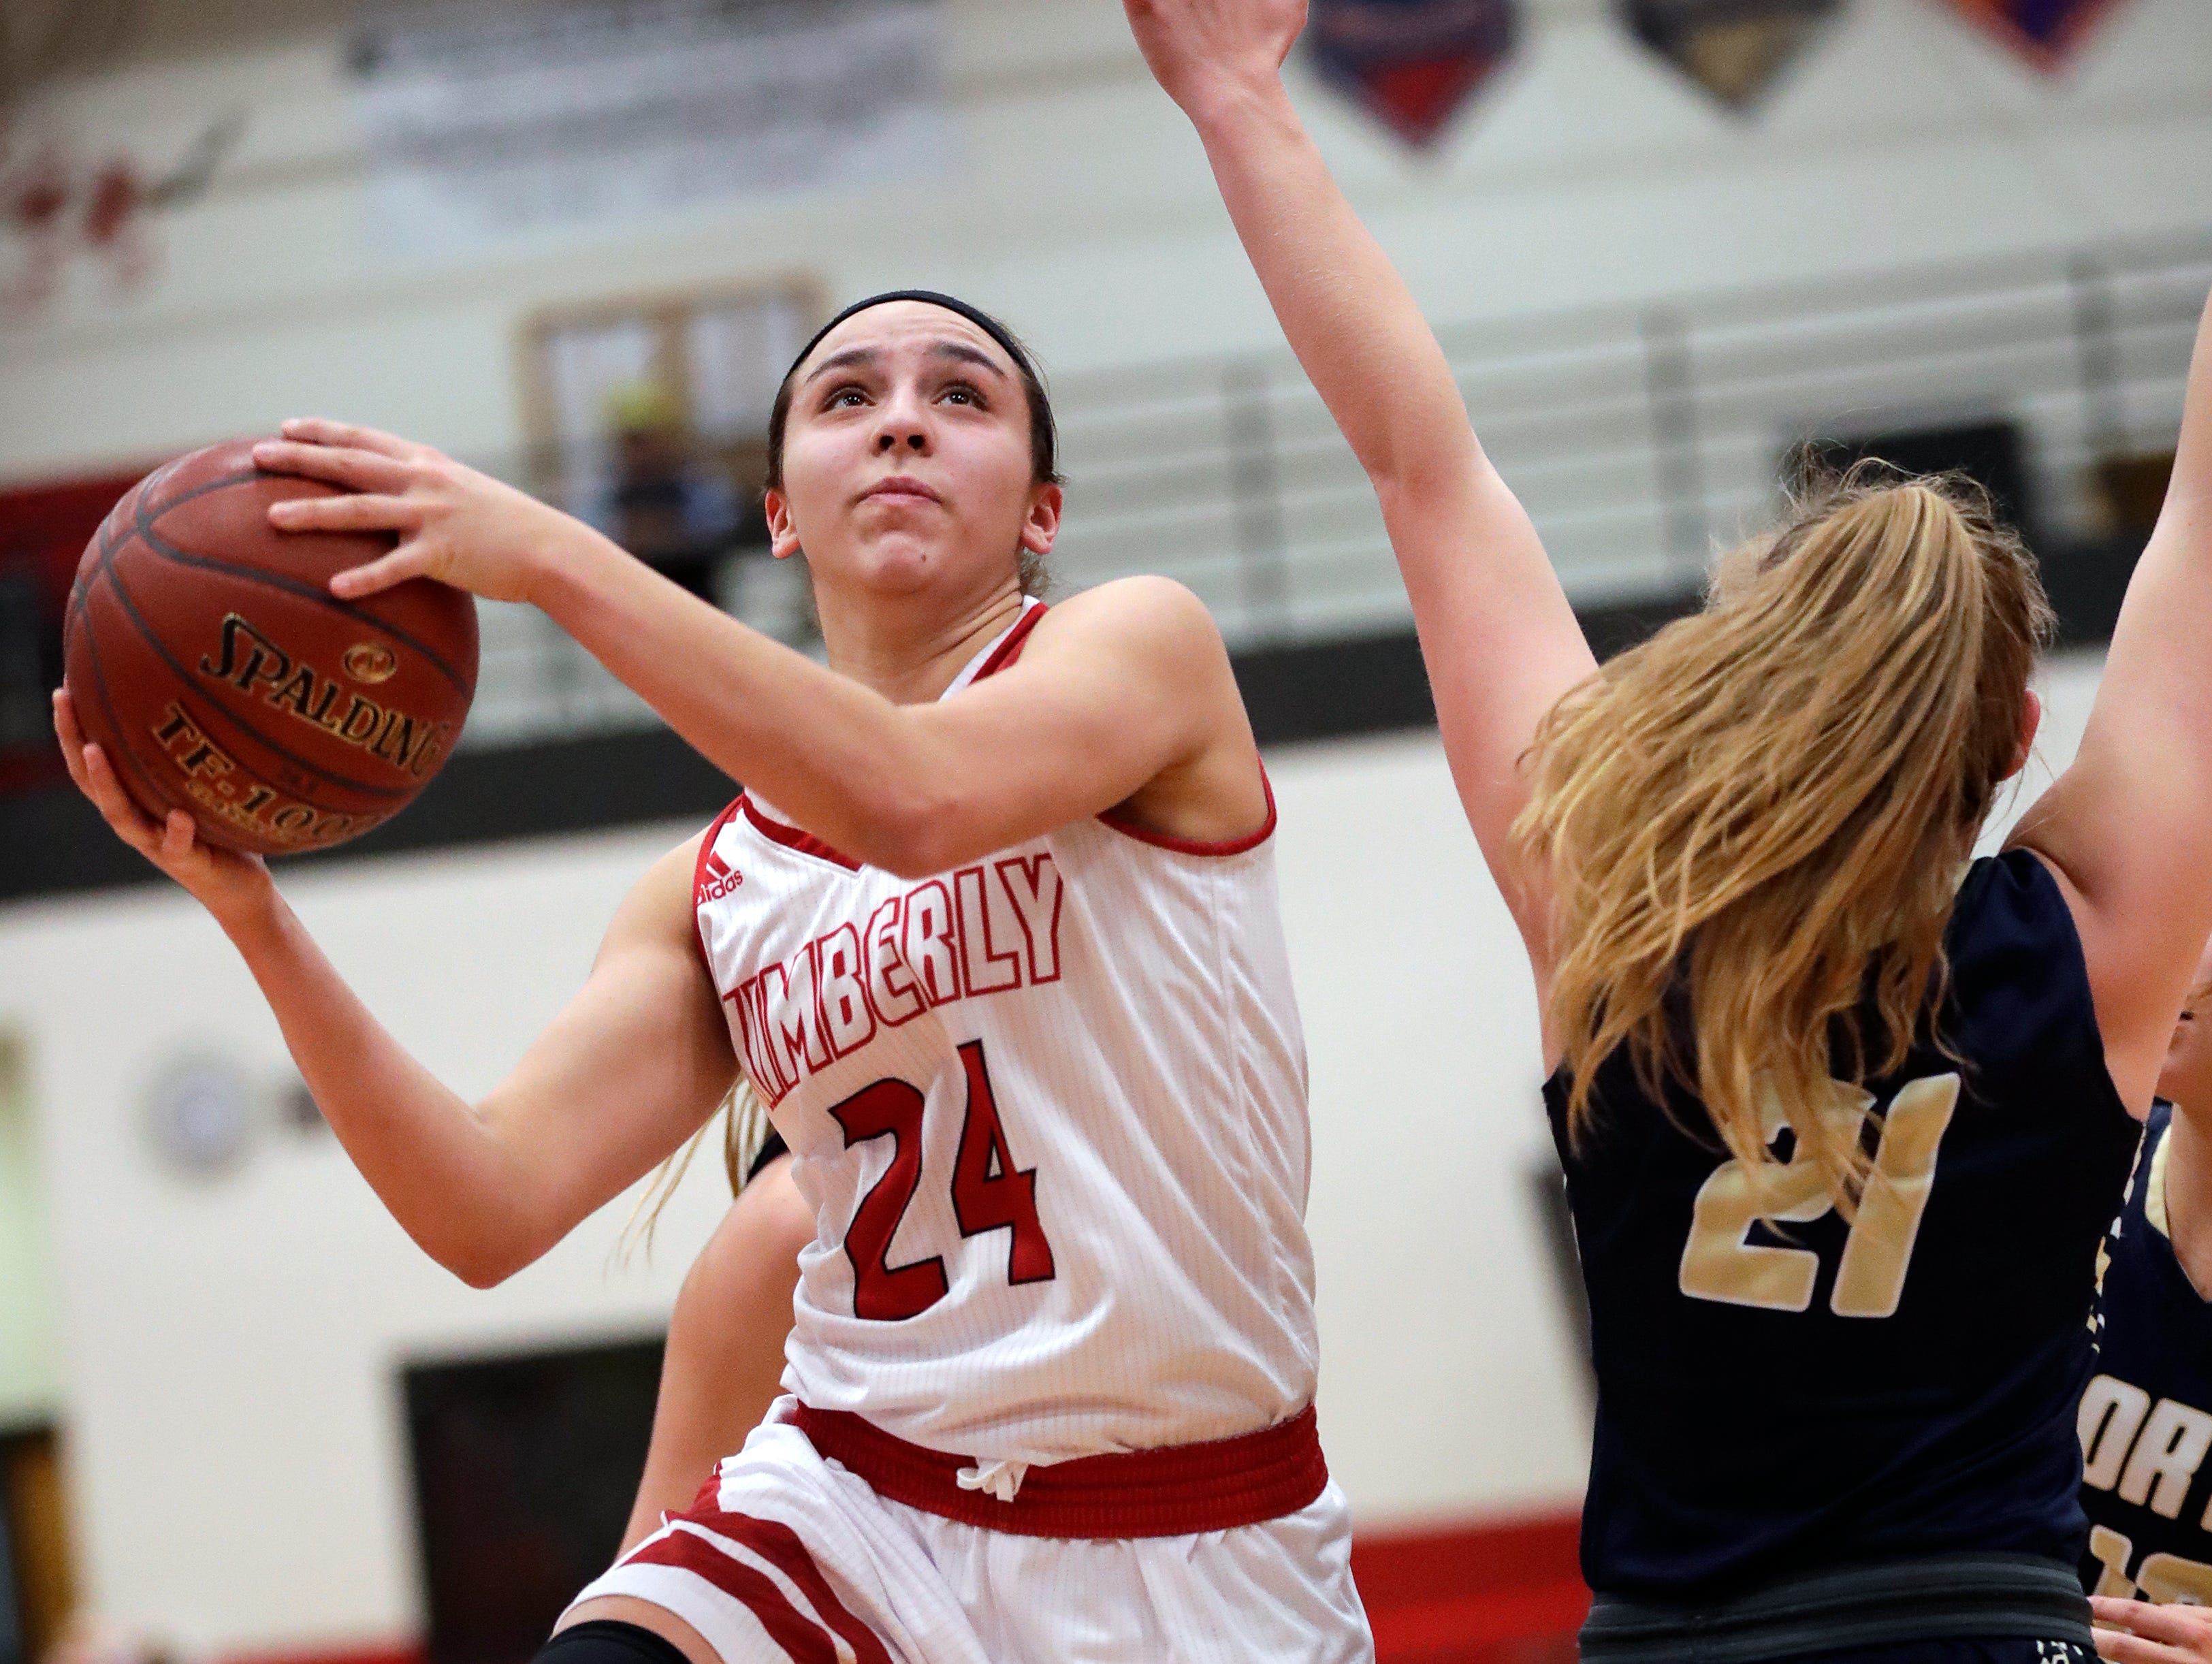 Kimberly High School's Shea Dechant (24) puts up a shot against Appleton North High School's Lilli Van Handel (21) during their girls basketball game Monday, February 11, 2019, in Kimberly, Wis. Dan Powers/USA TODAY NETWORK-Wisconsin